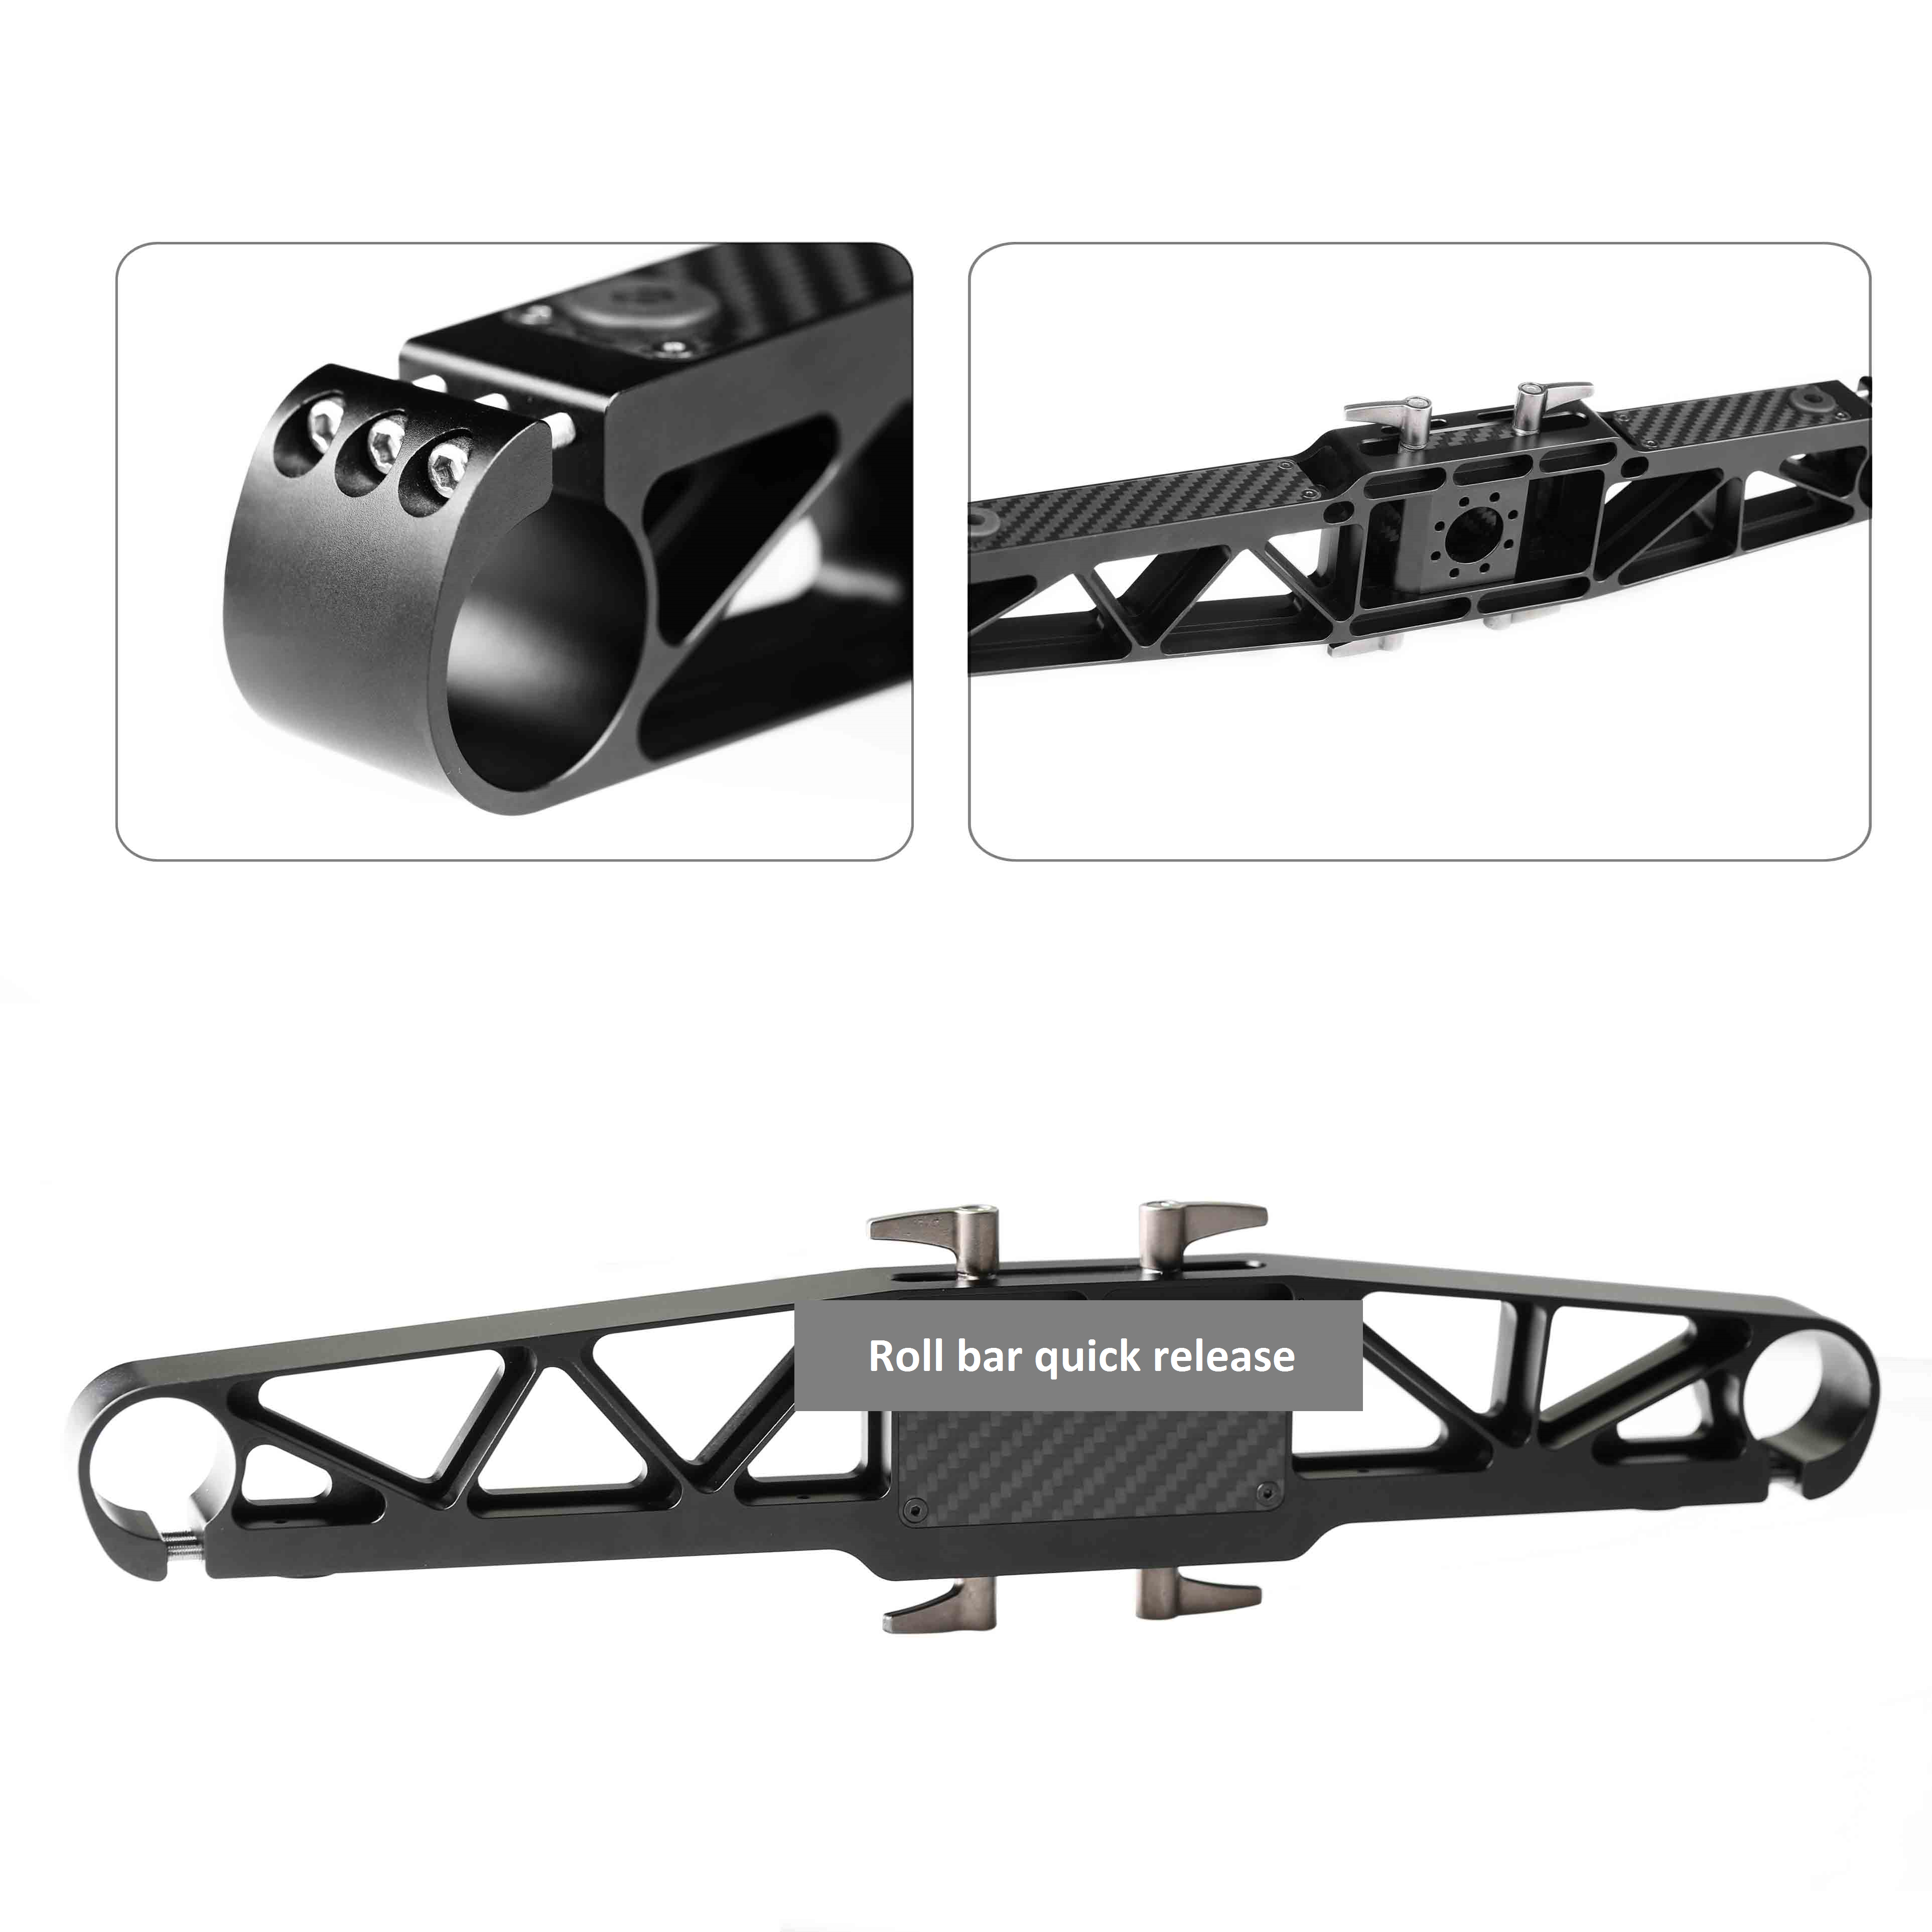 Quick release aluminum roll bar for brushless gimbal